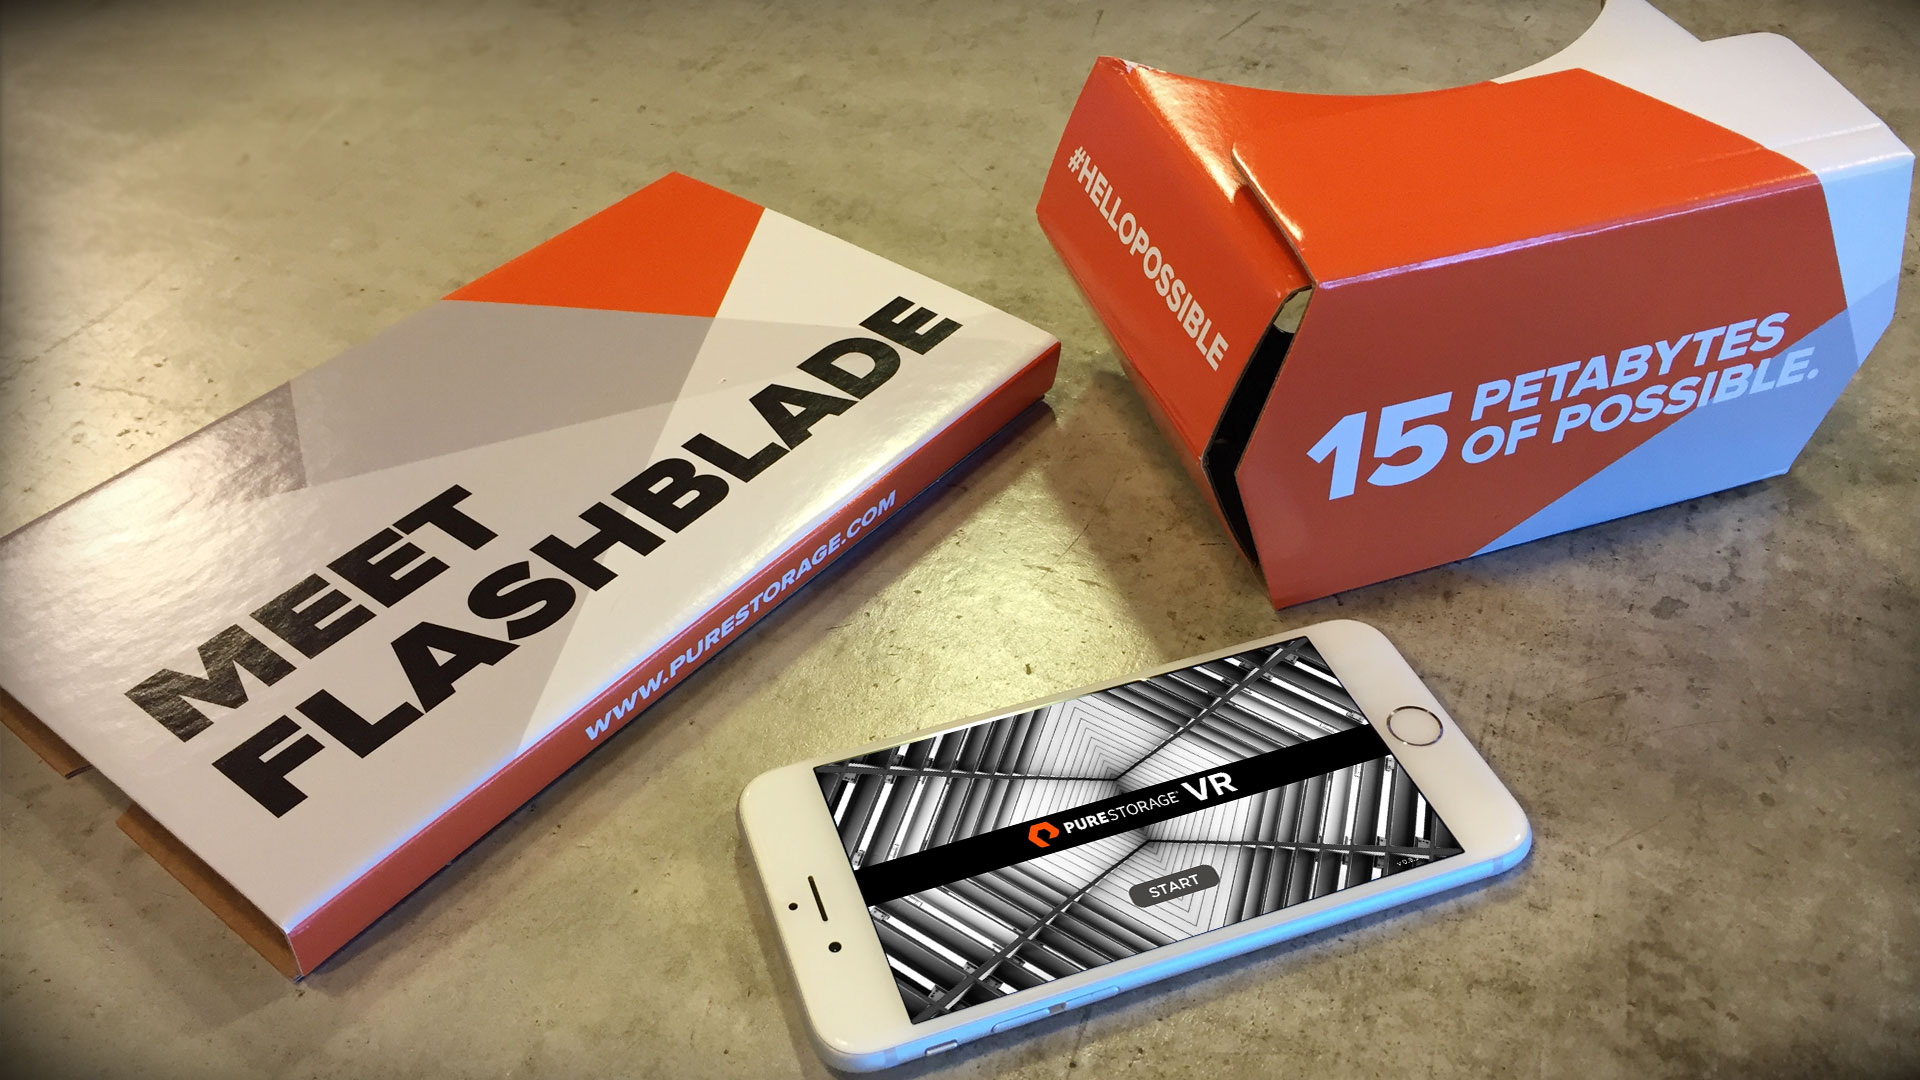 PureStorage VR Mobile App - Google Cardboard